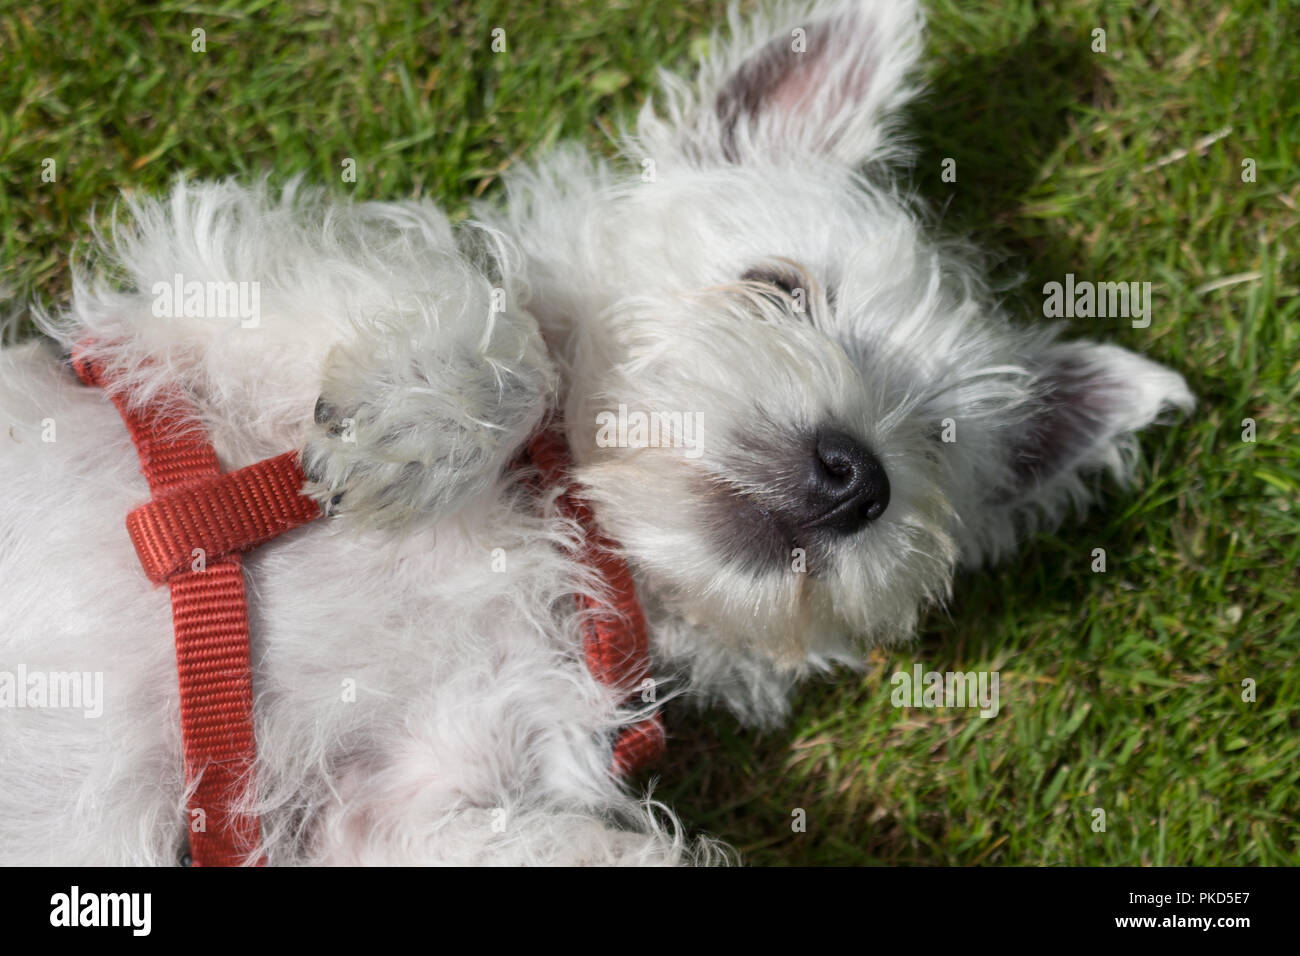 West Highland White Terrier, commonly known as a Westie. Lying on his back in the grass with a red harness. Stock Photo